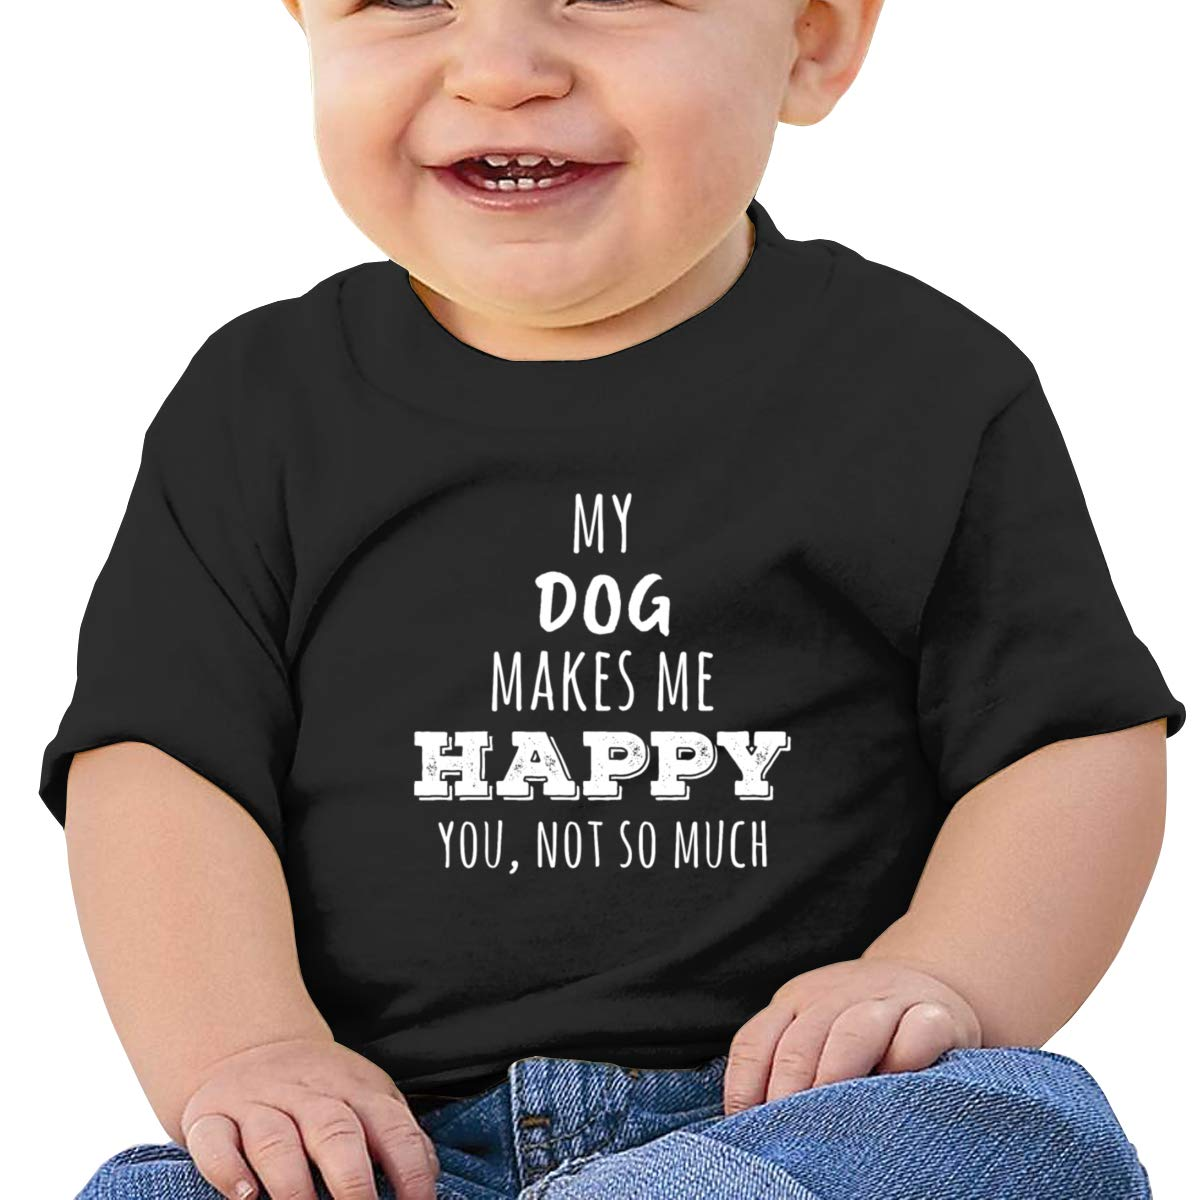 My Dog Make Me Happy You Not So Much Toddler Short Sleeve Tee Girls